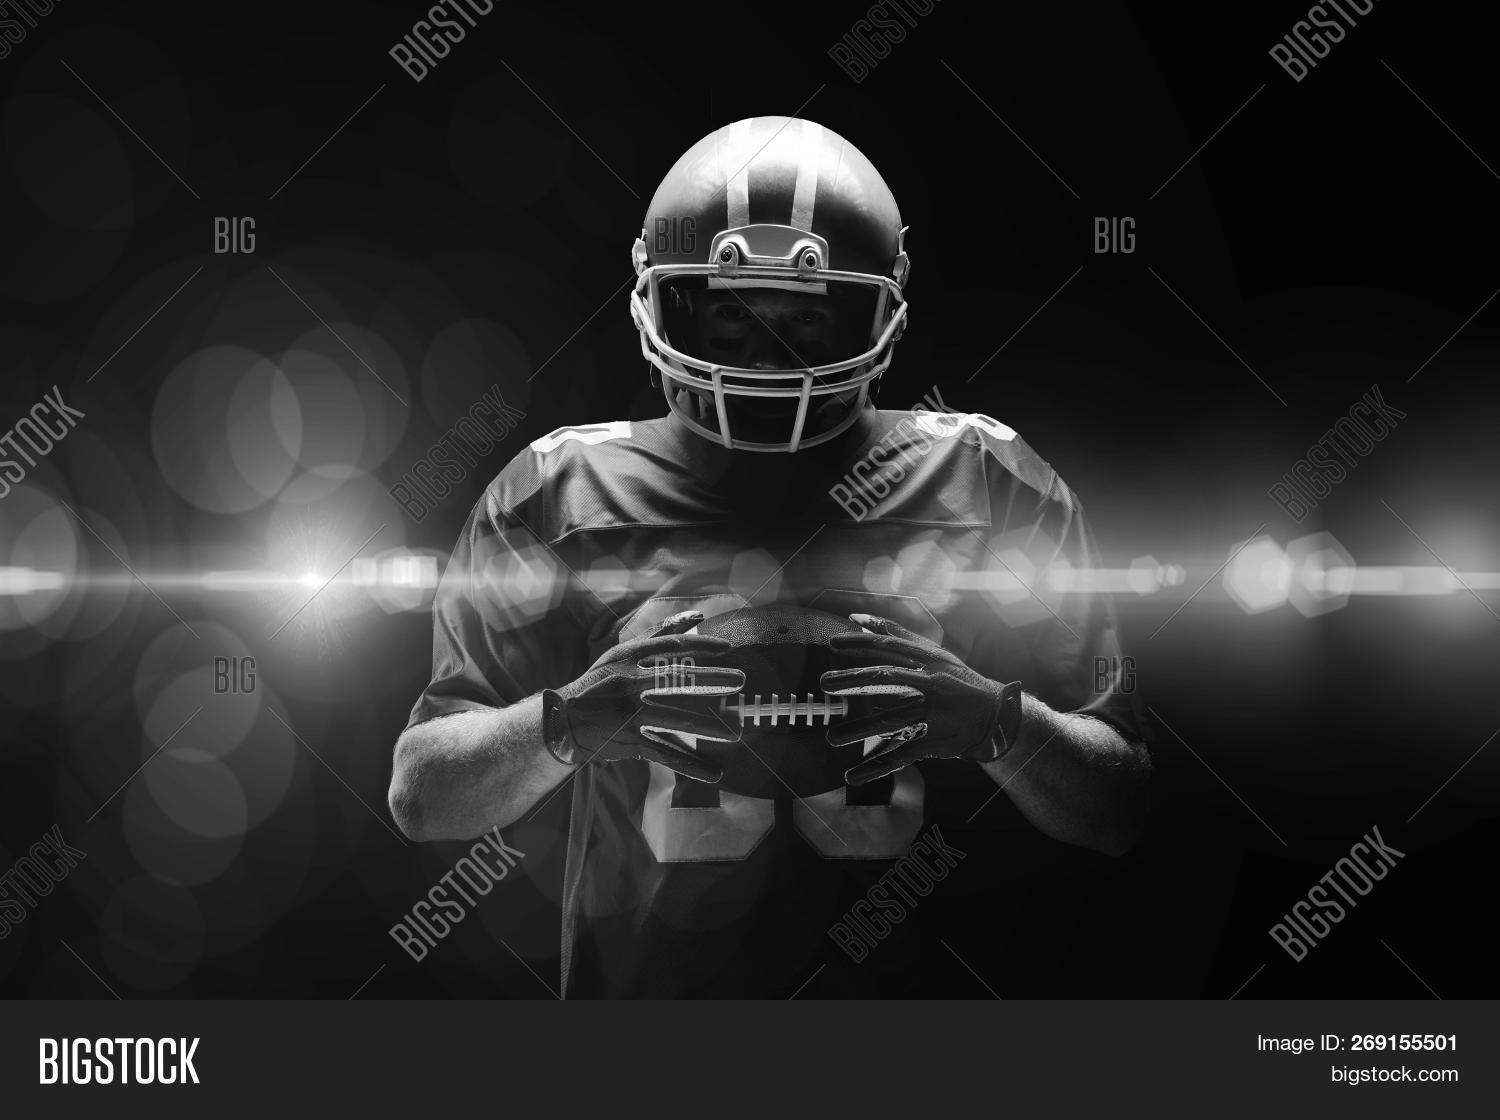 American Football Image Photo Free Trial Bigstock